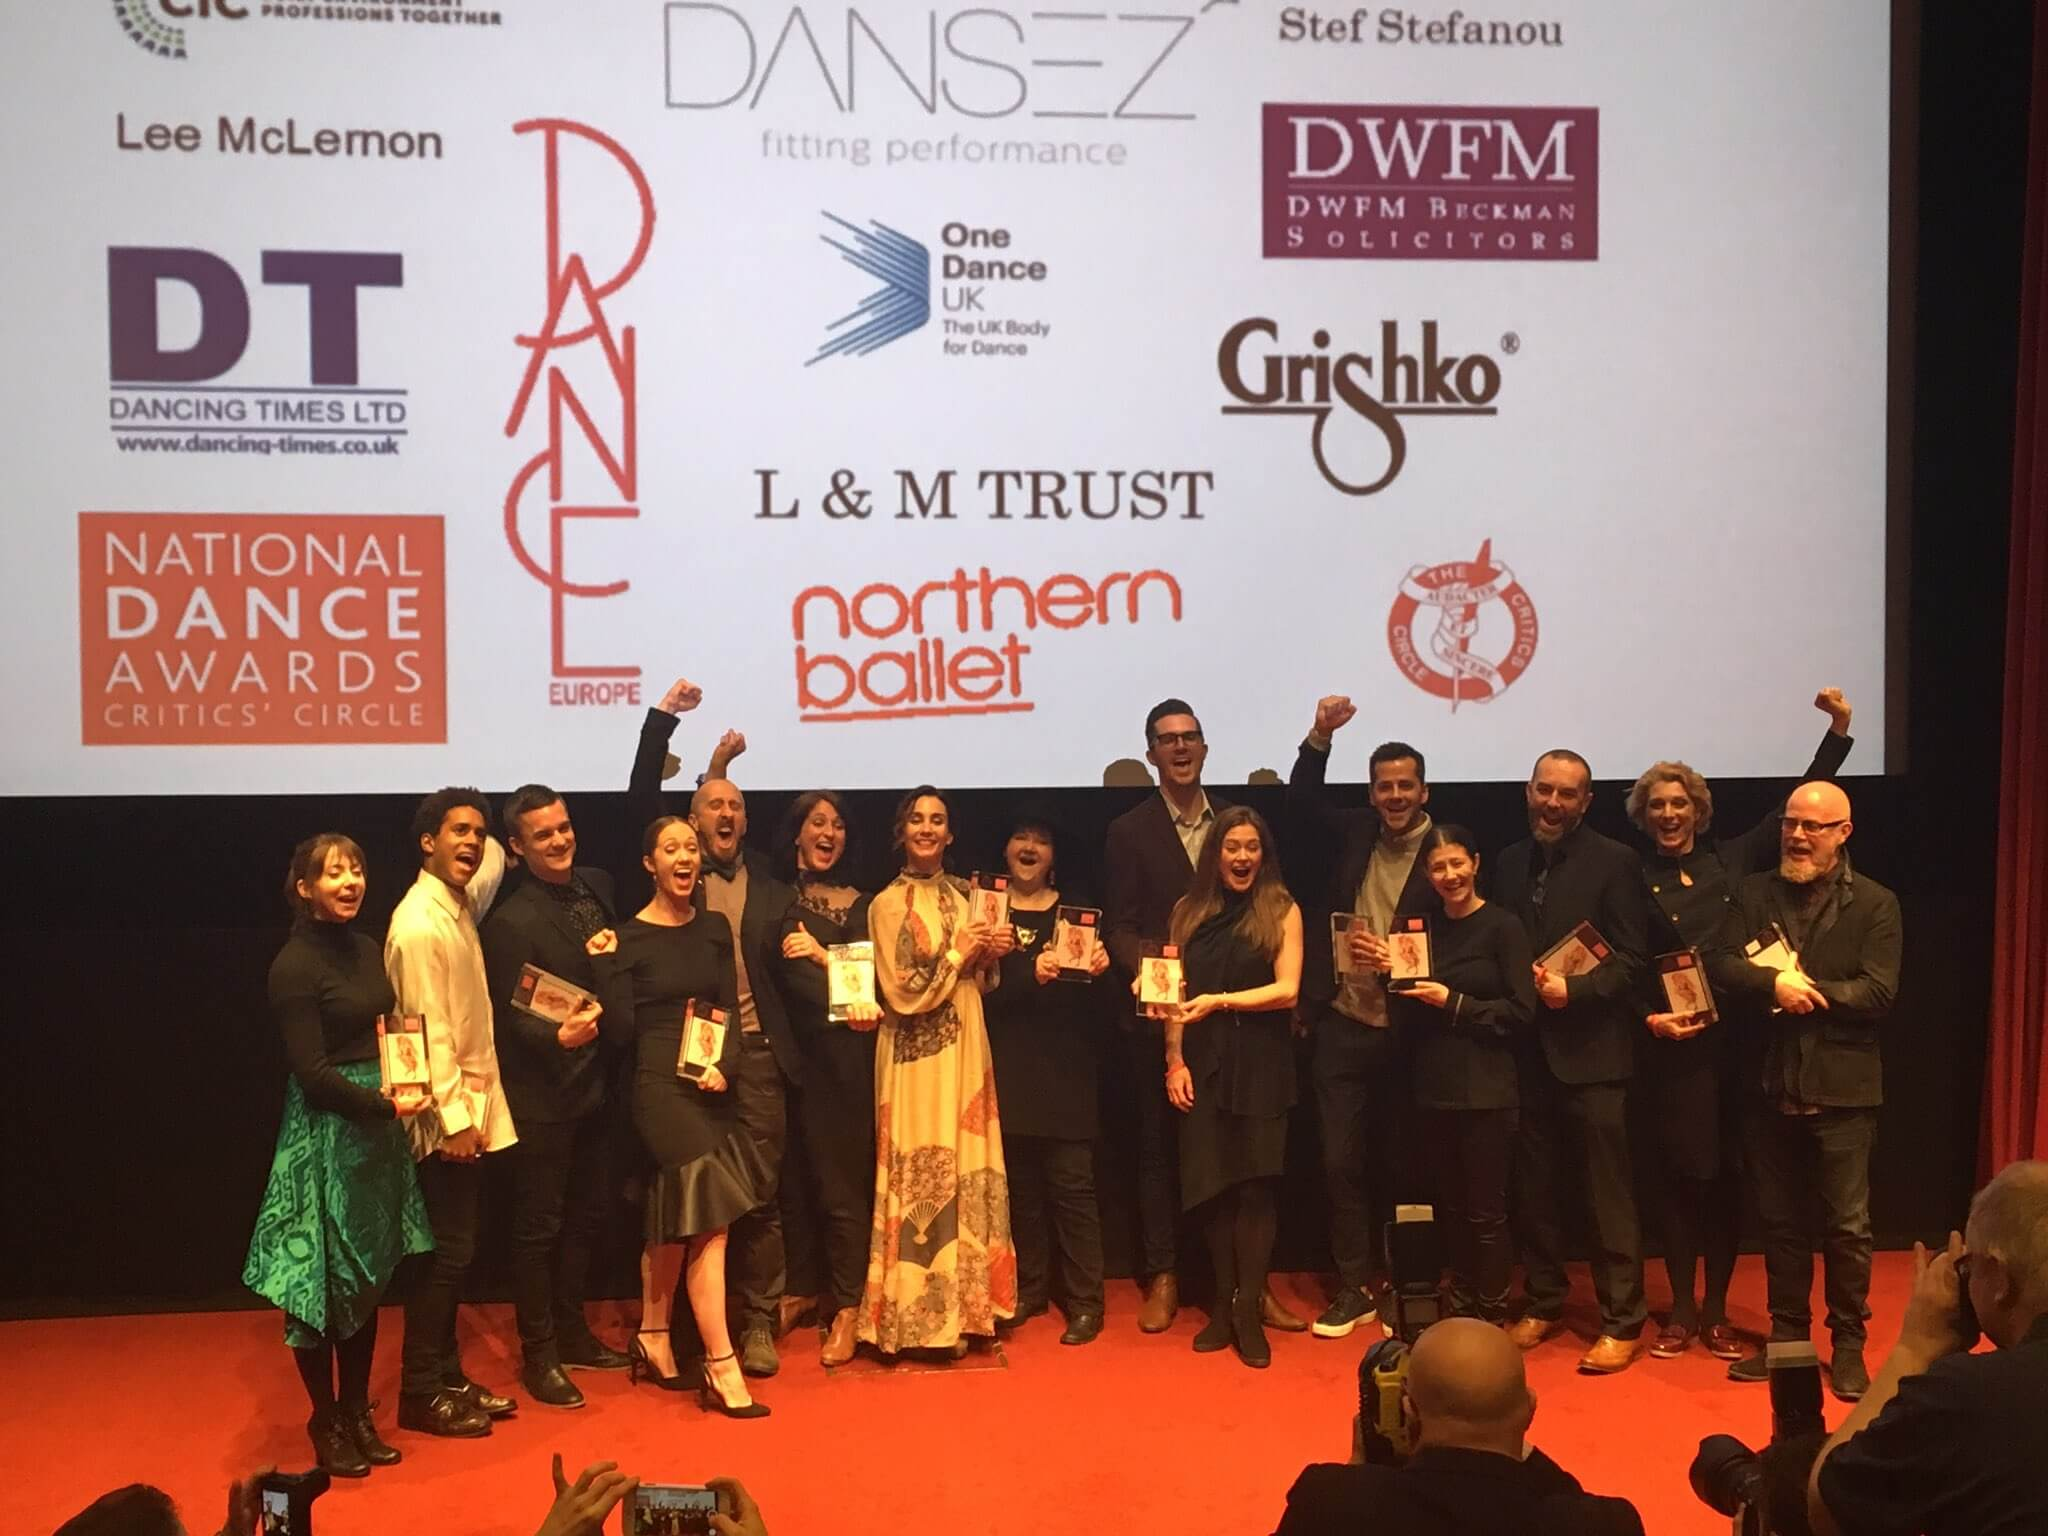 National Dance Awards 2017 winners at the Barbican Centre. Source: Twitter @NatDanceAwards